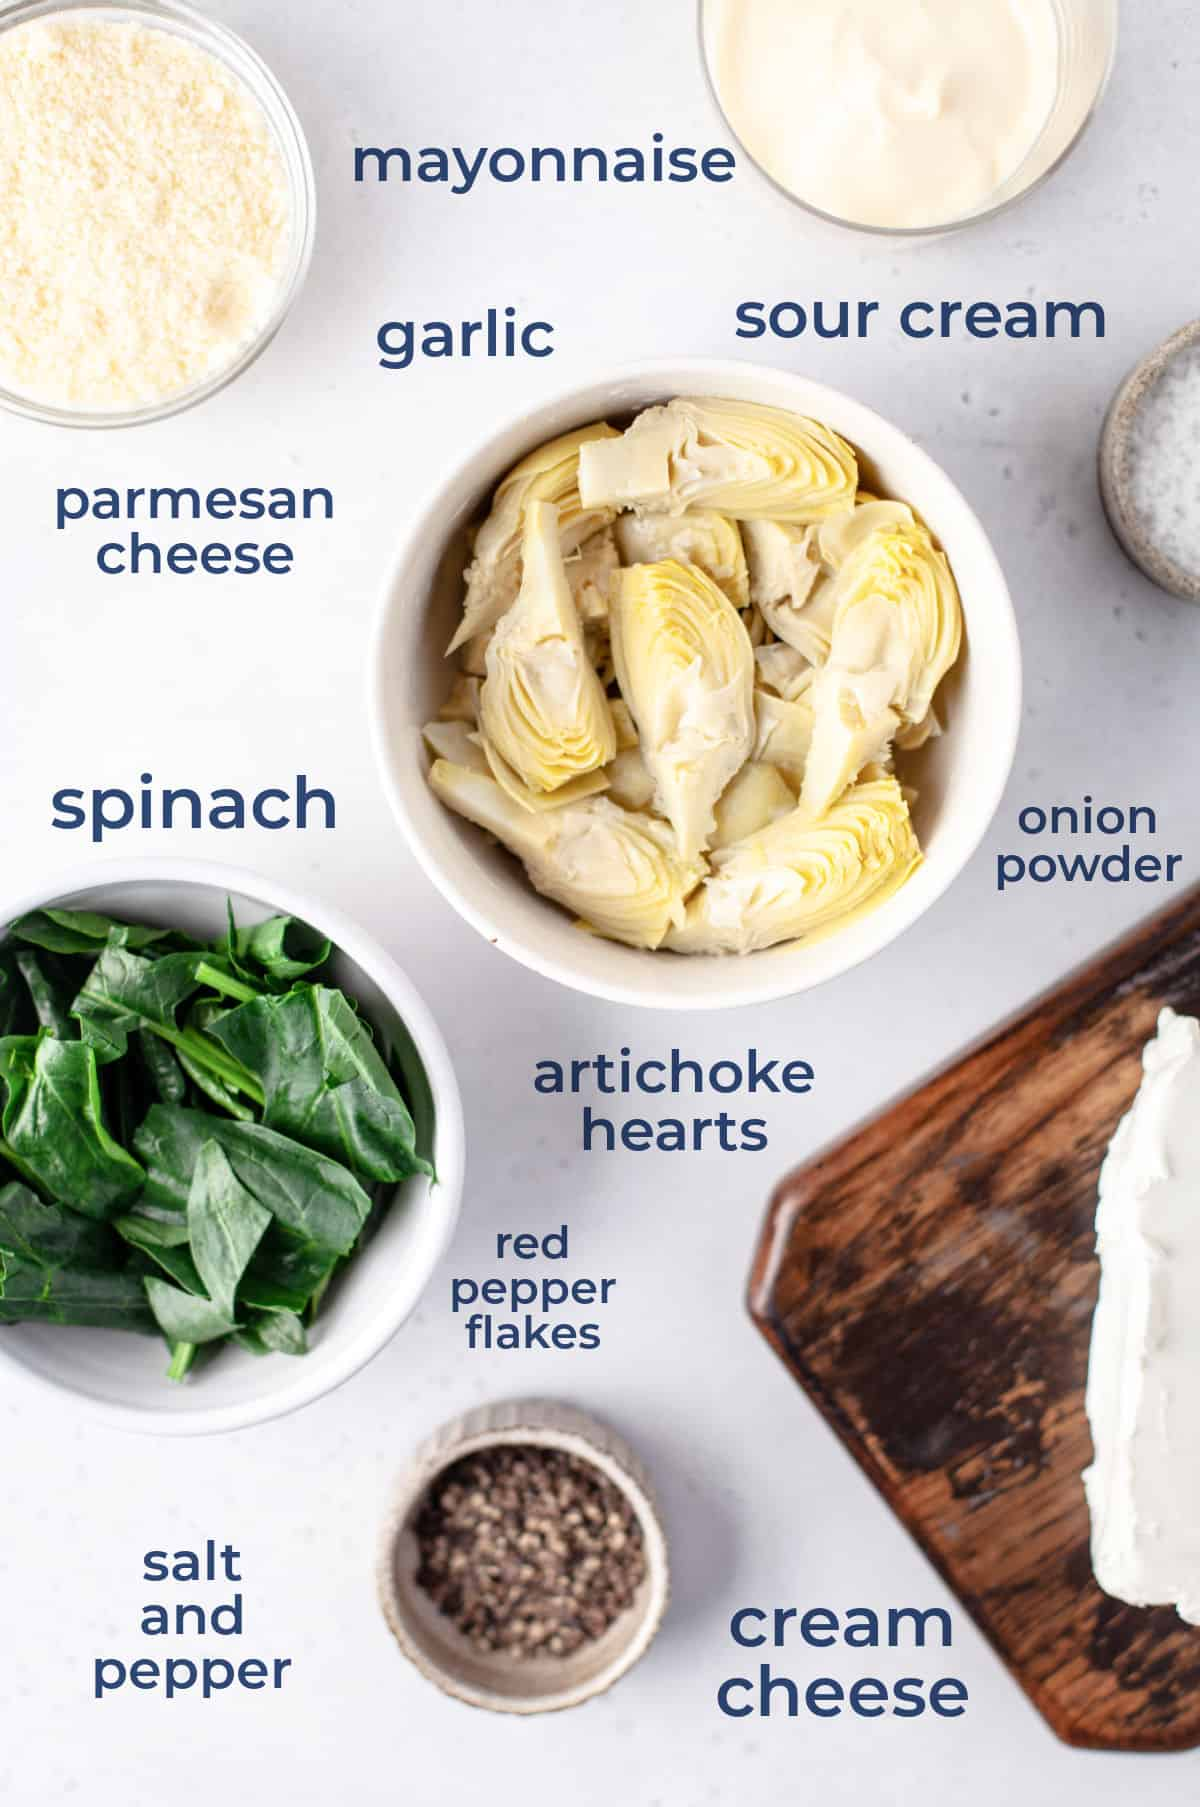 Ingredients for Hot Spinach and Artichoke Dip - cream cheese, parmesan, sour cream, mayo, garlic, spinach, artichoke, seasonings